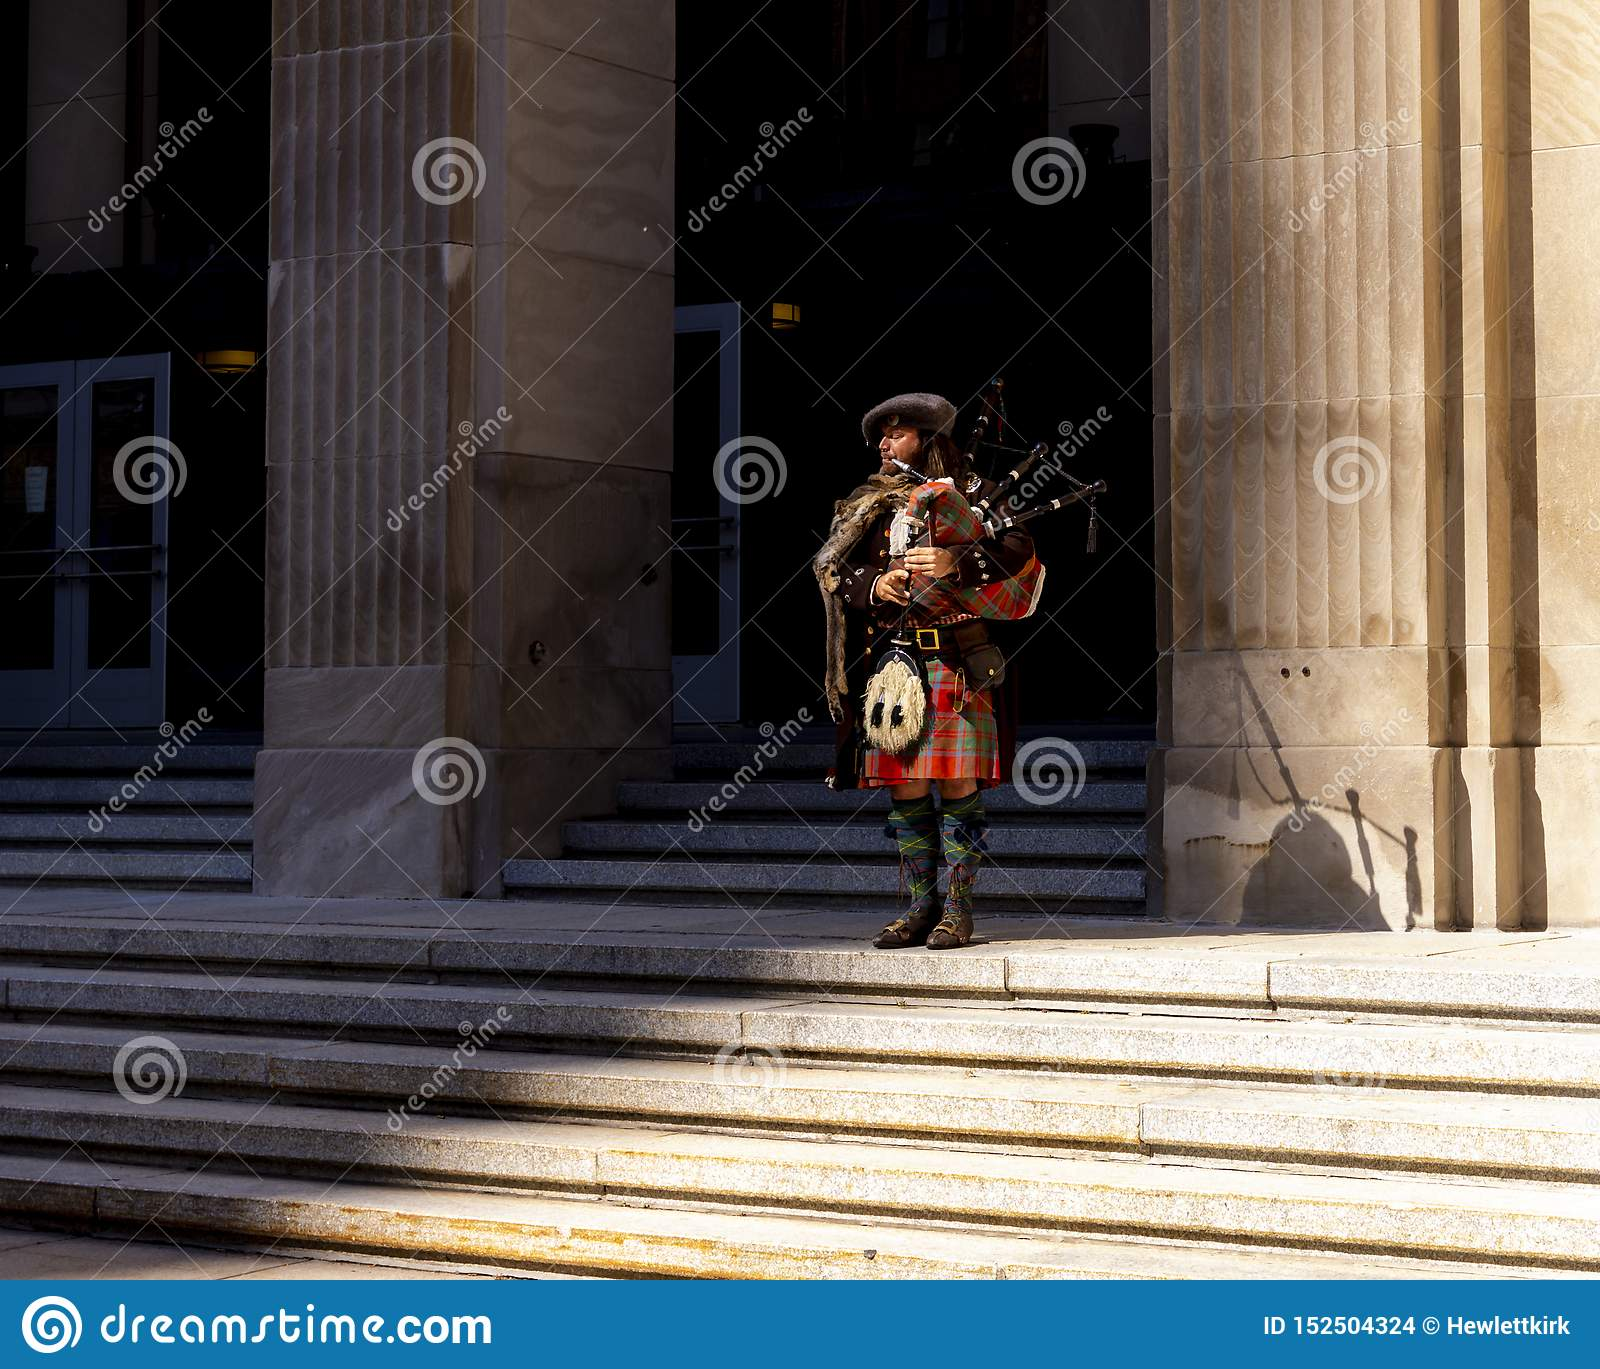 Bagpiper performing on building steps